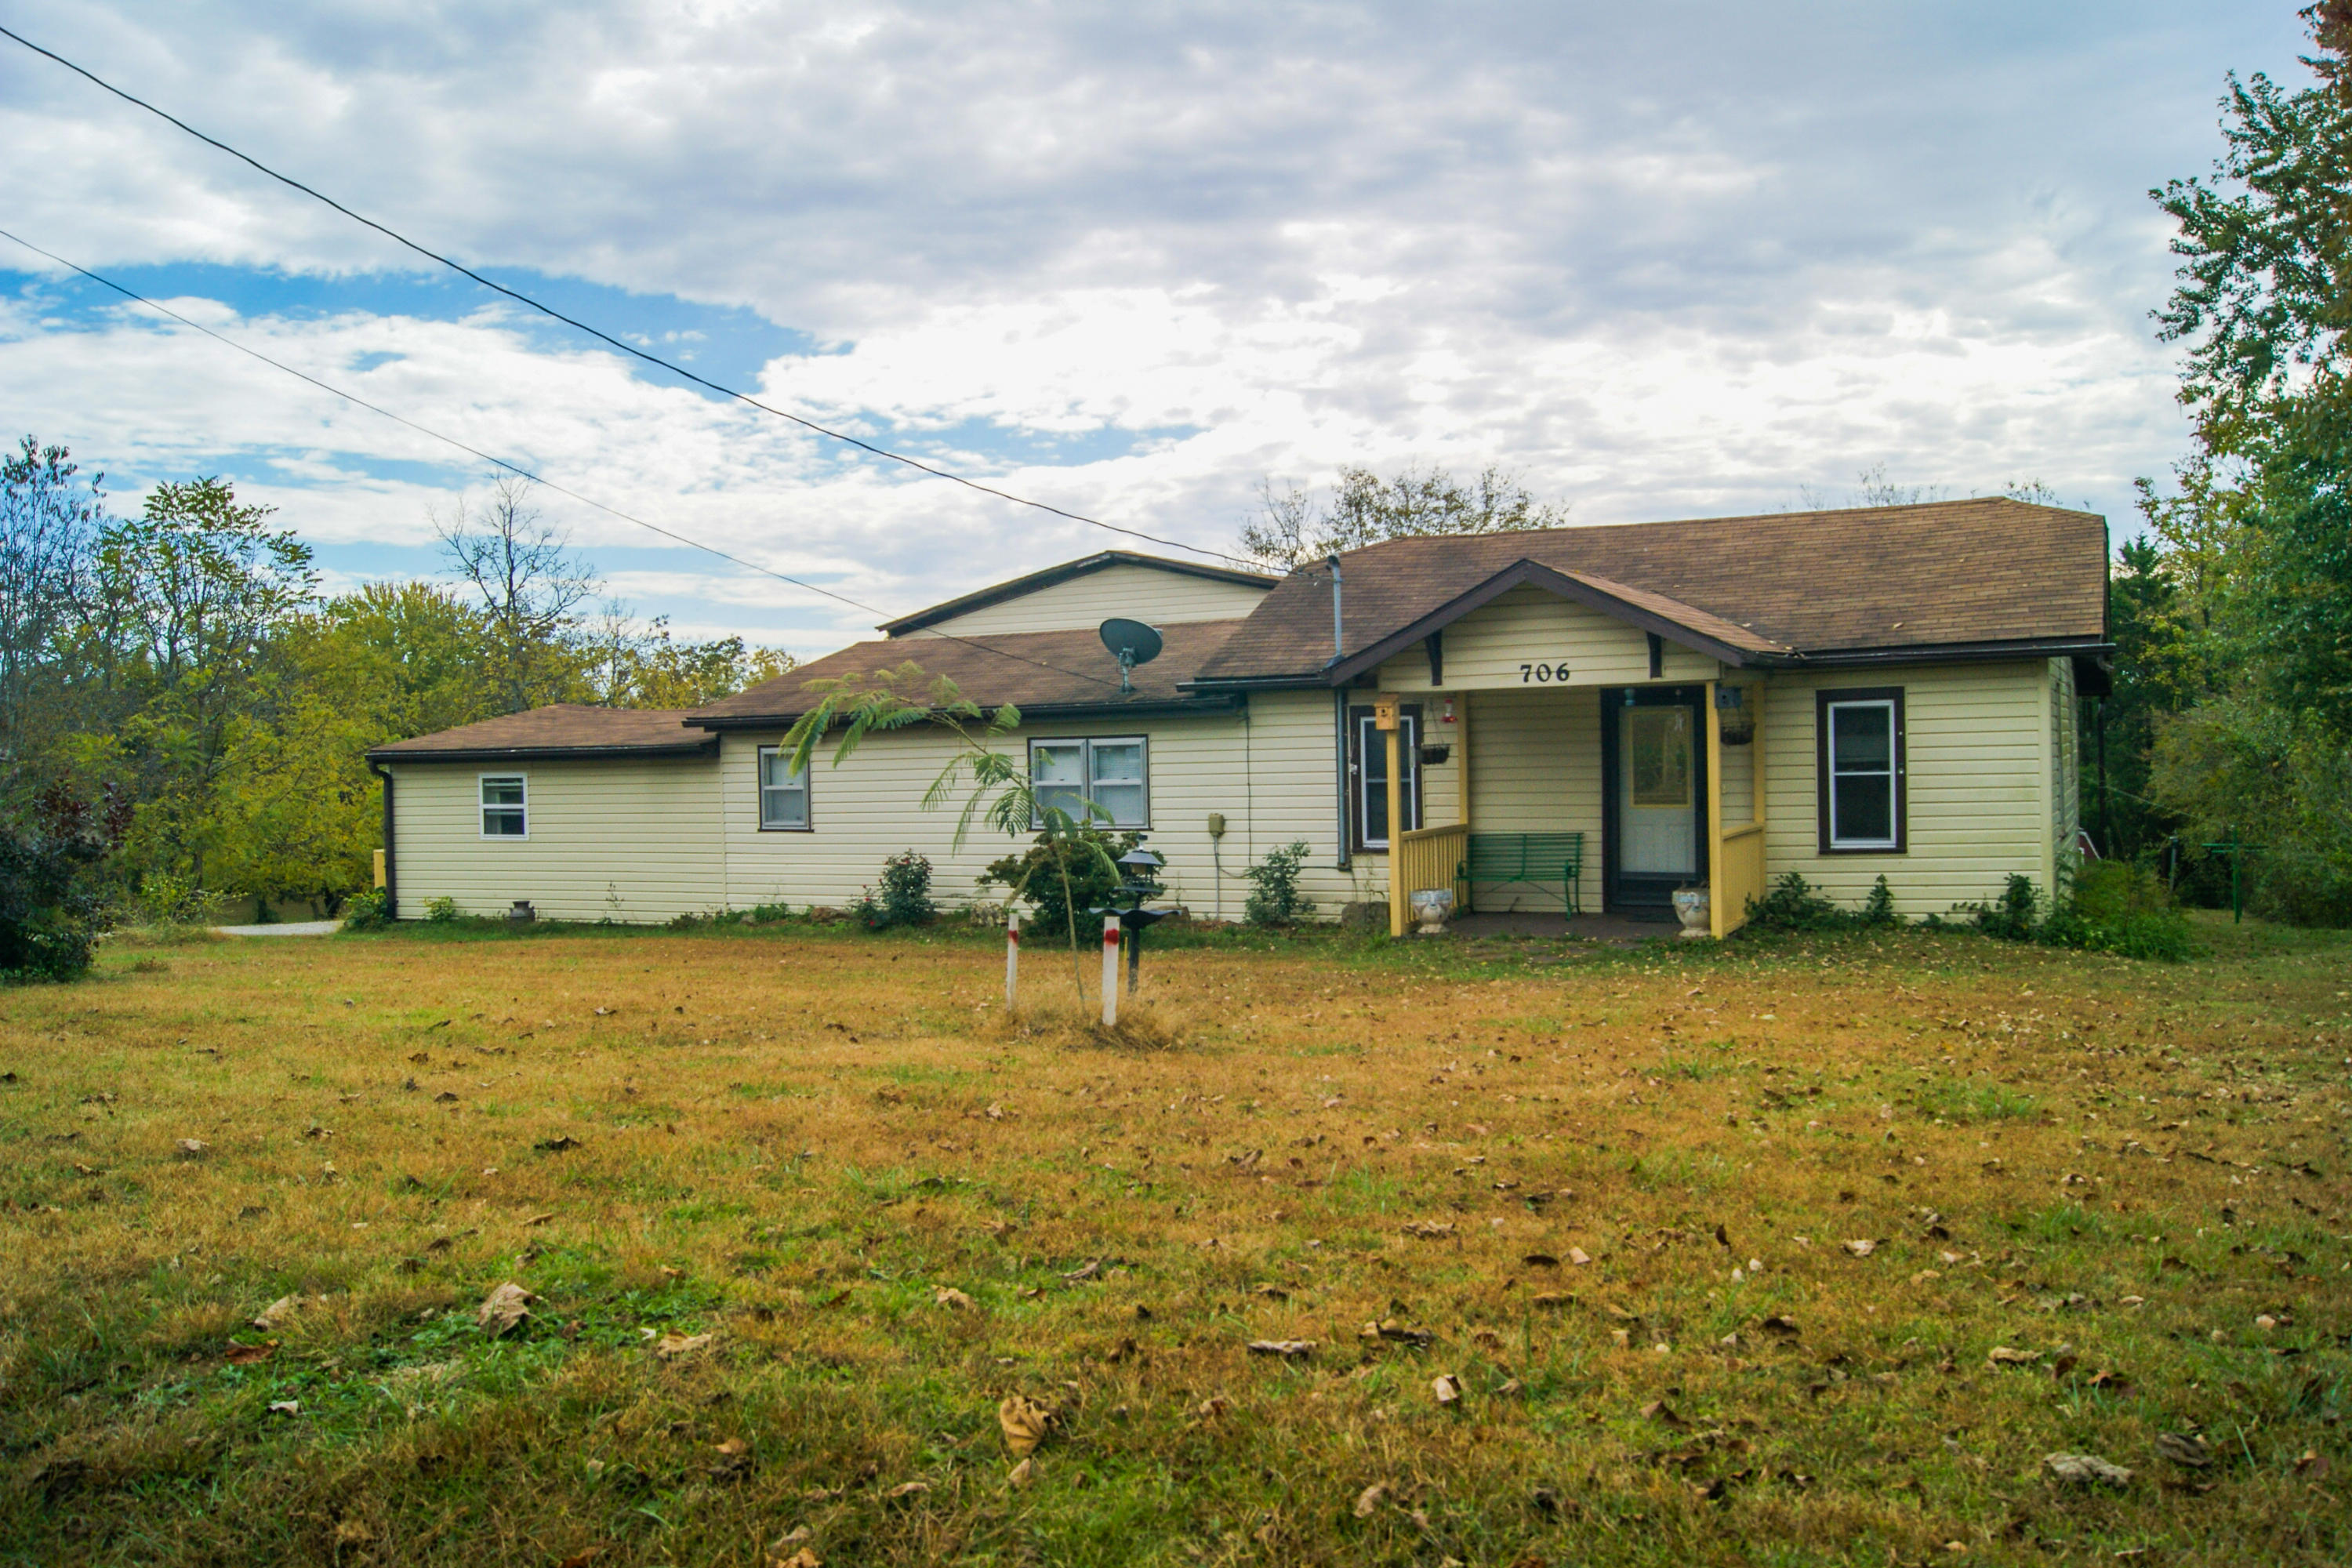 706 South Center Street Willow Springs, MO 65793